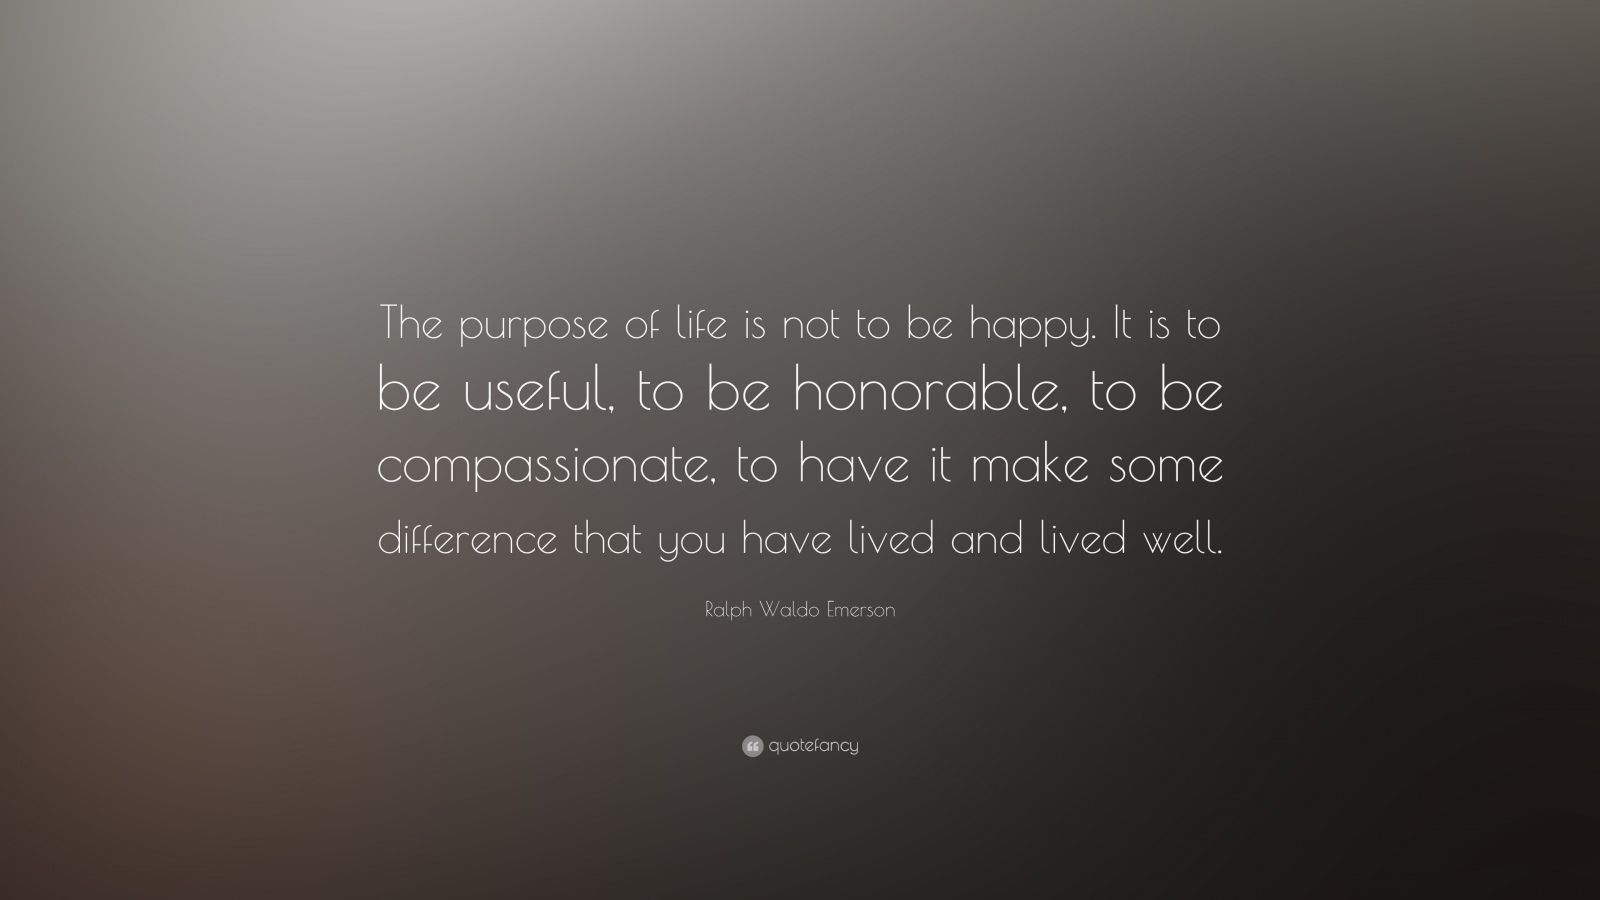 essay on the purpose of life is to be happy